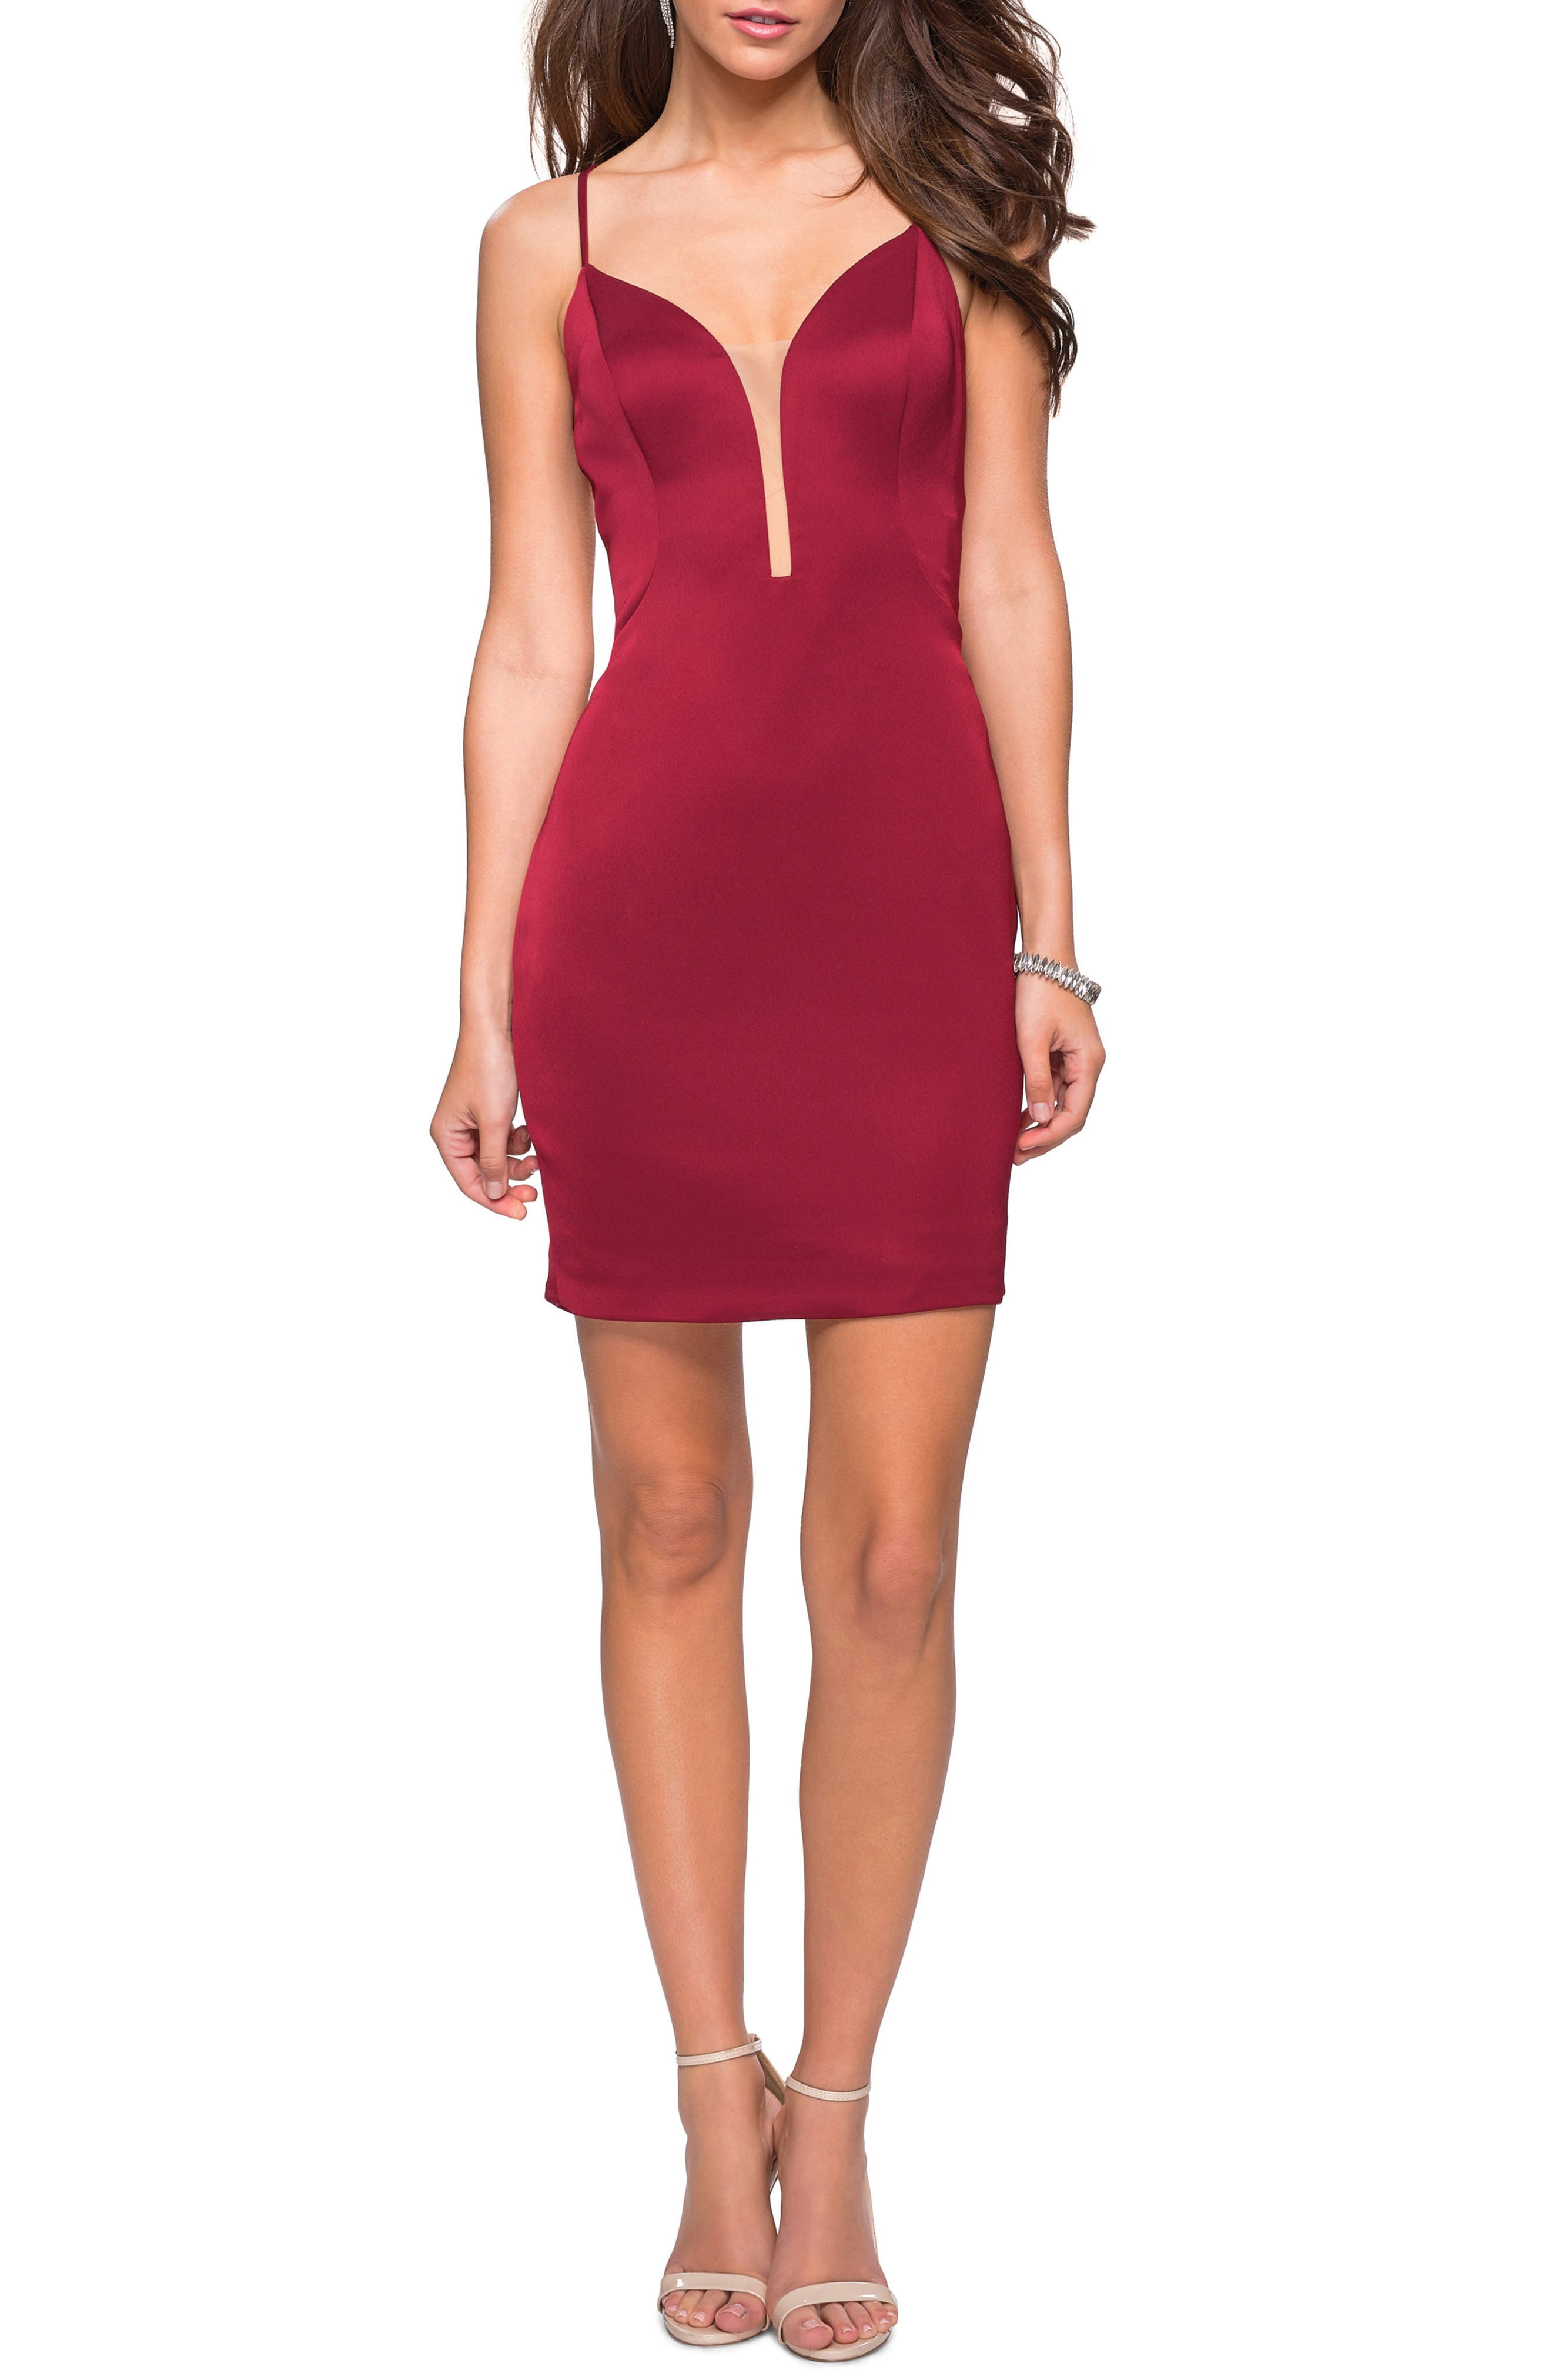 La Femme Strappy Back Satin Party Dress, Burgundy